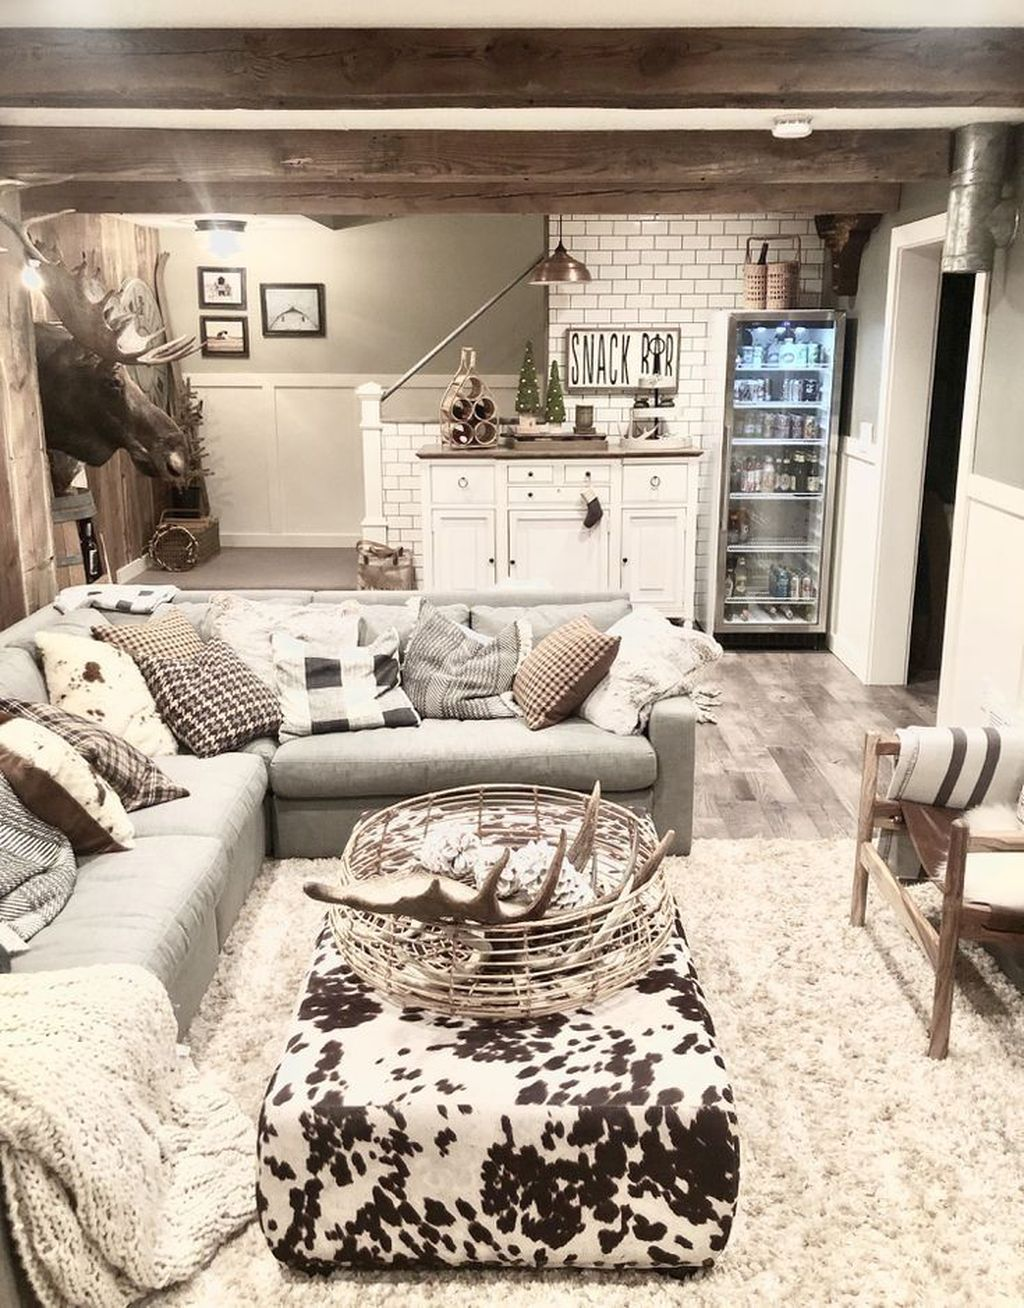 Stunning Basement Remodel Ideas Be A Beautiful Living Space 03